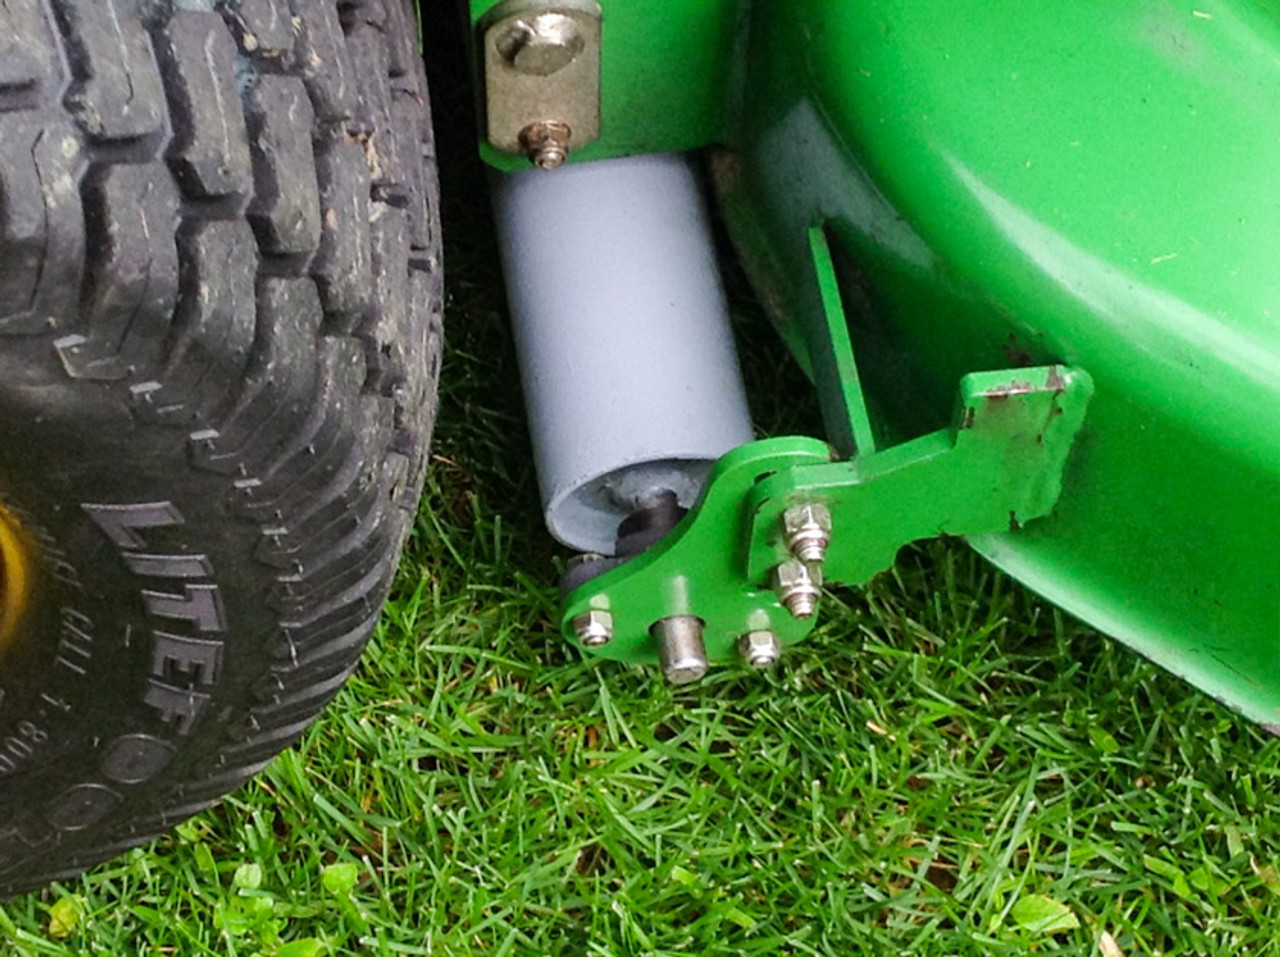 Lawn Striping kit for John Deere 737